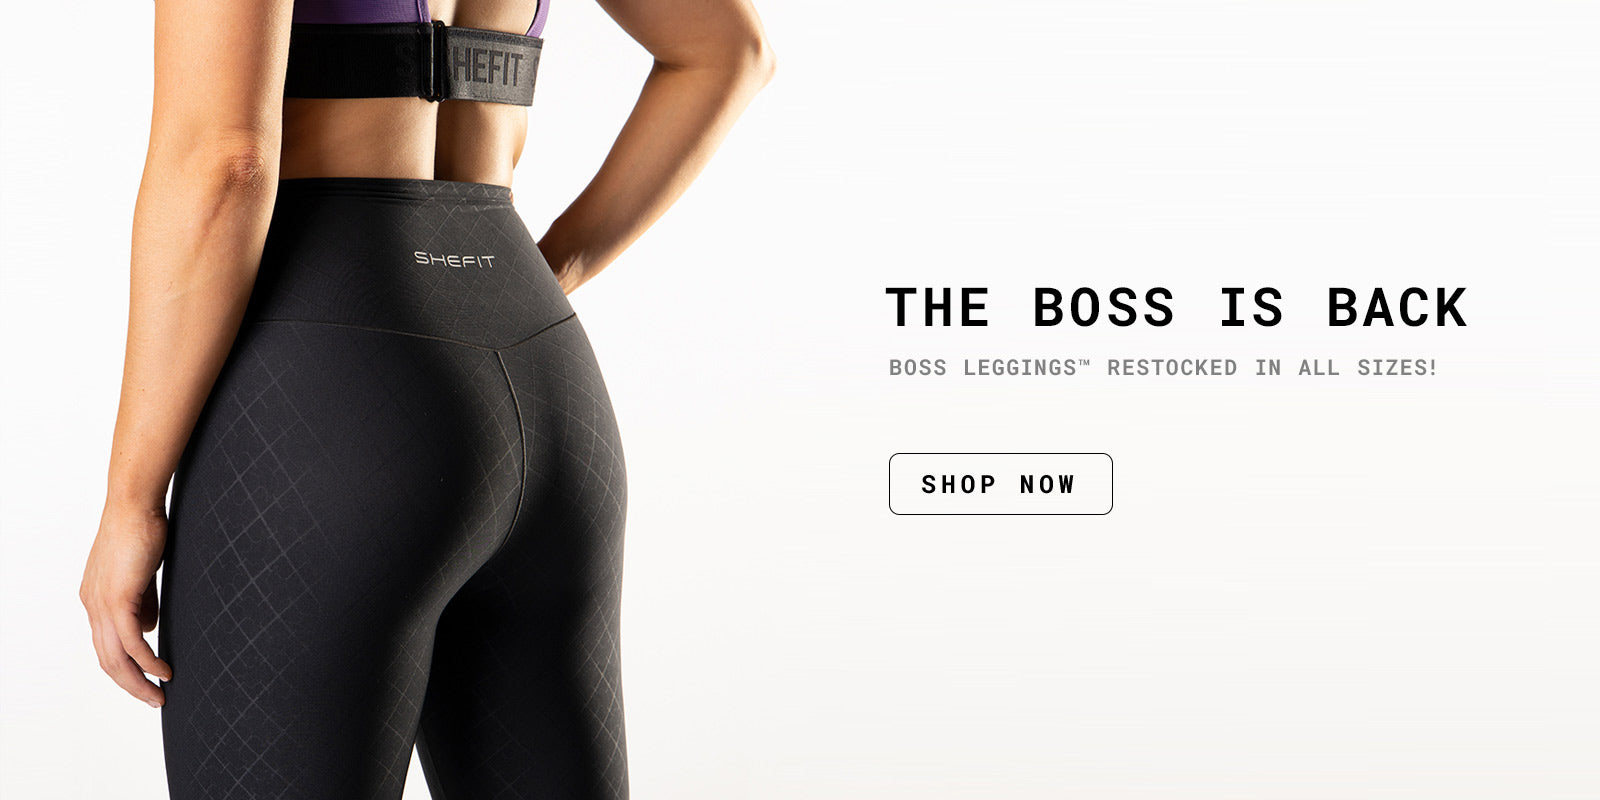 Boss Leggings Shop Now